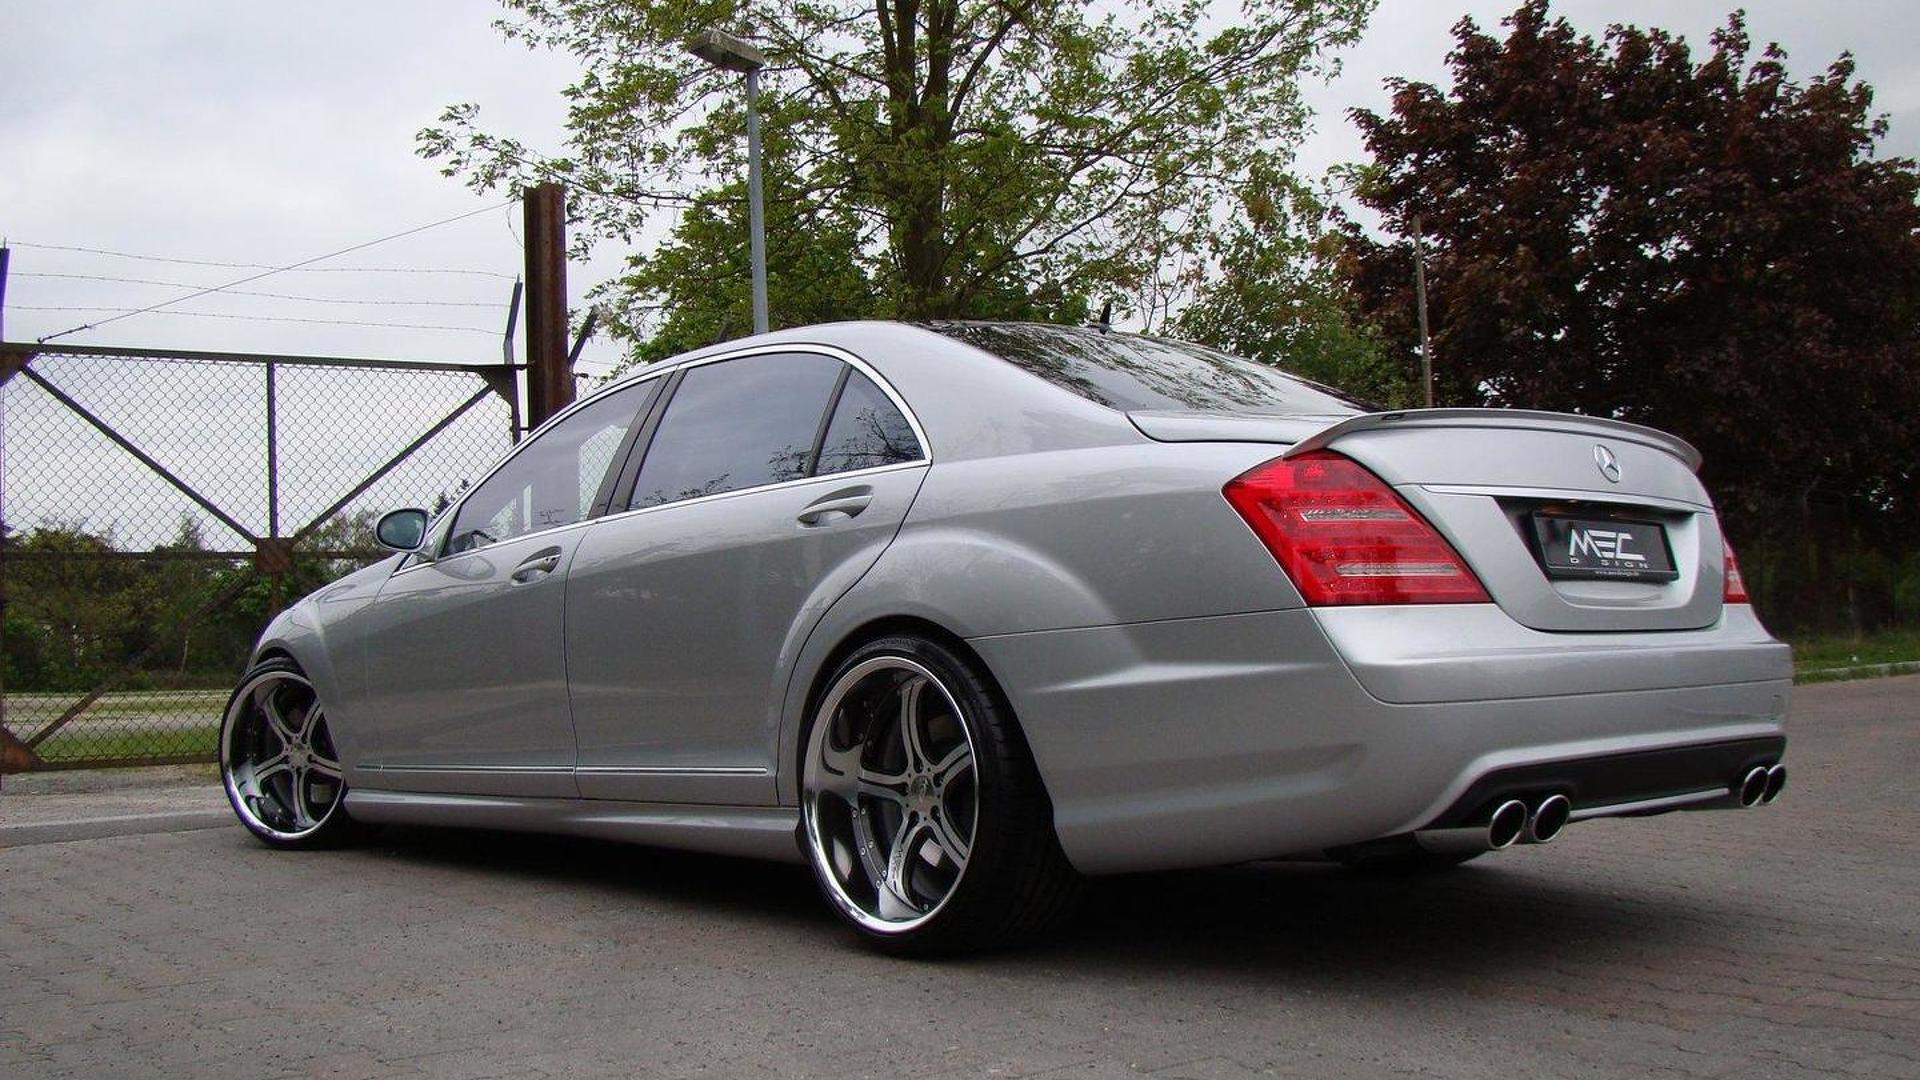 2007 S550 For Sale >> MEC Design gives S65 AMG makeover to pre-facelift S-Class plus mecxtremeIII wheels